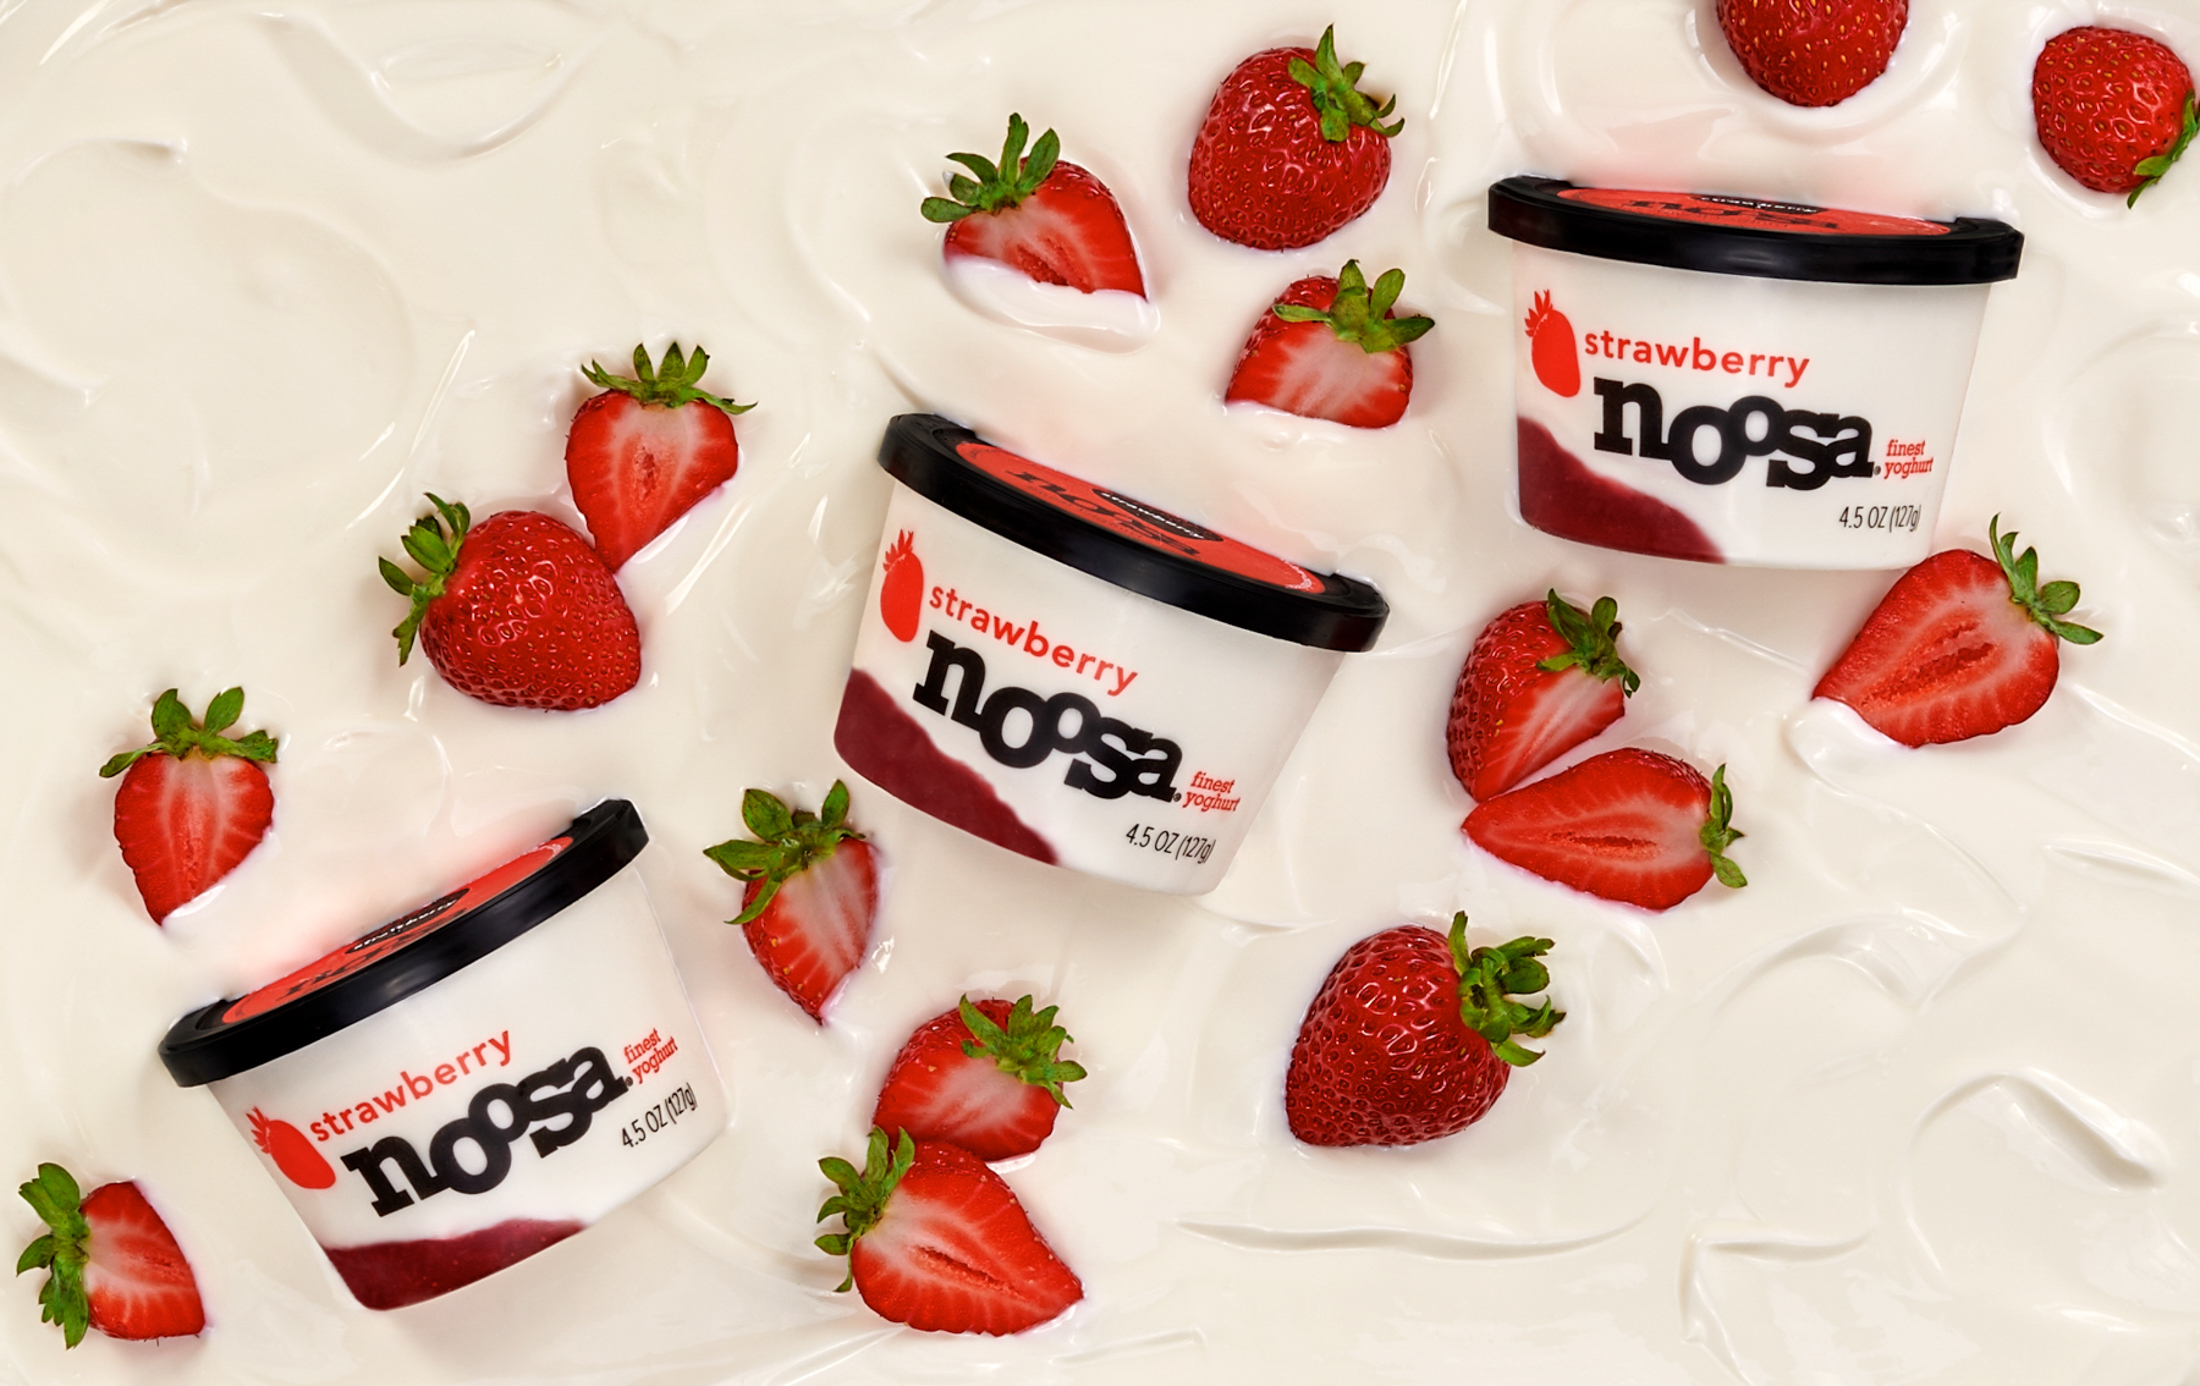 noosa_StrawberryFOB_4.5oz_Lifestylei